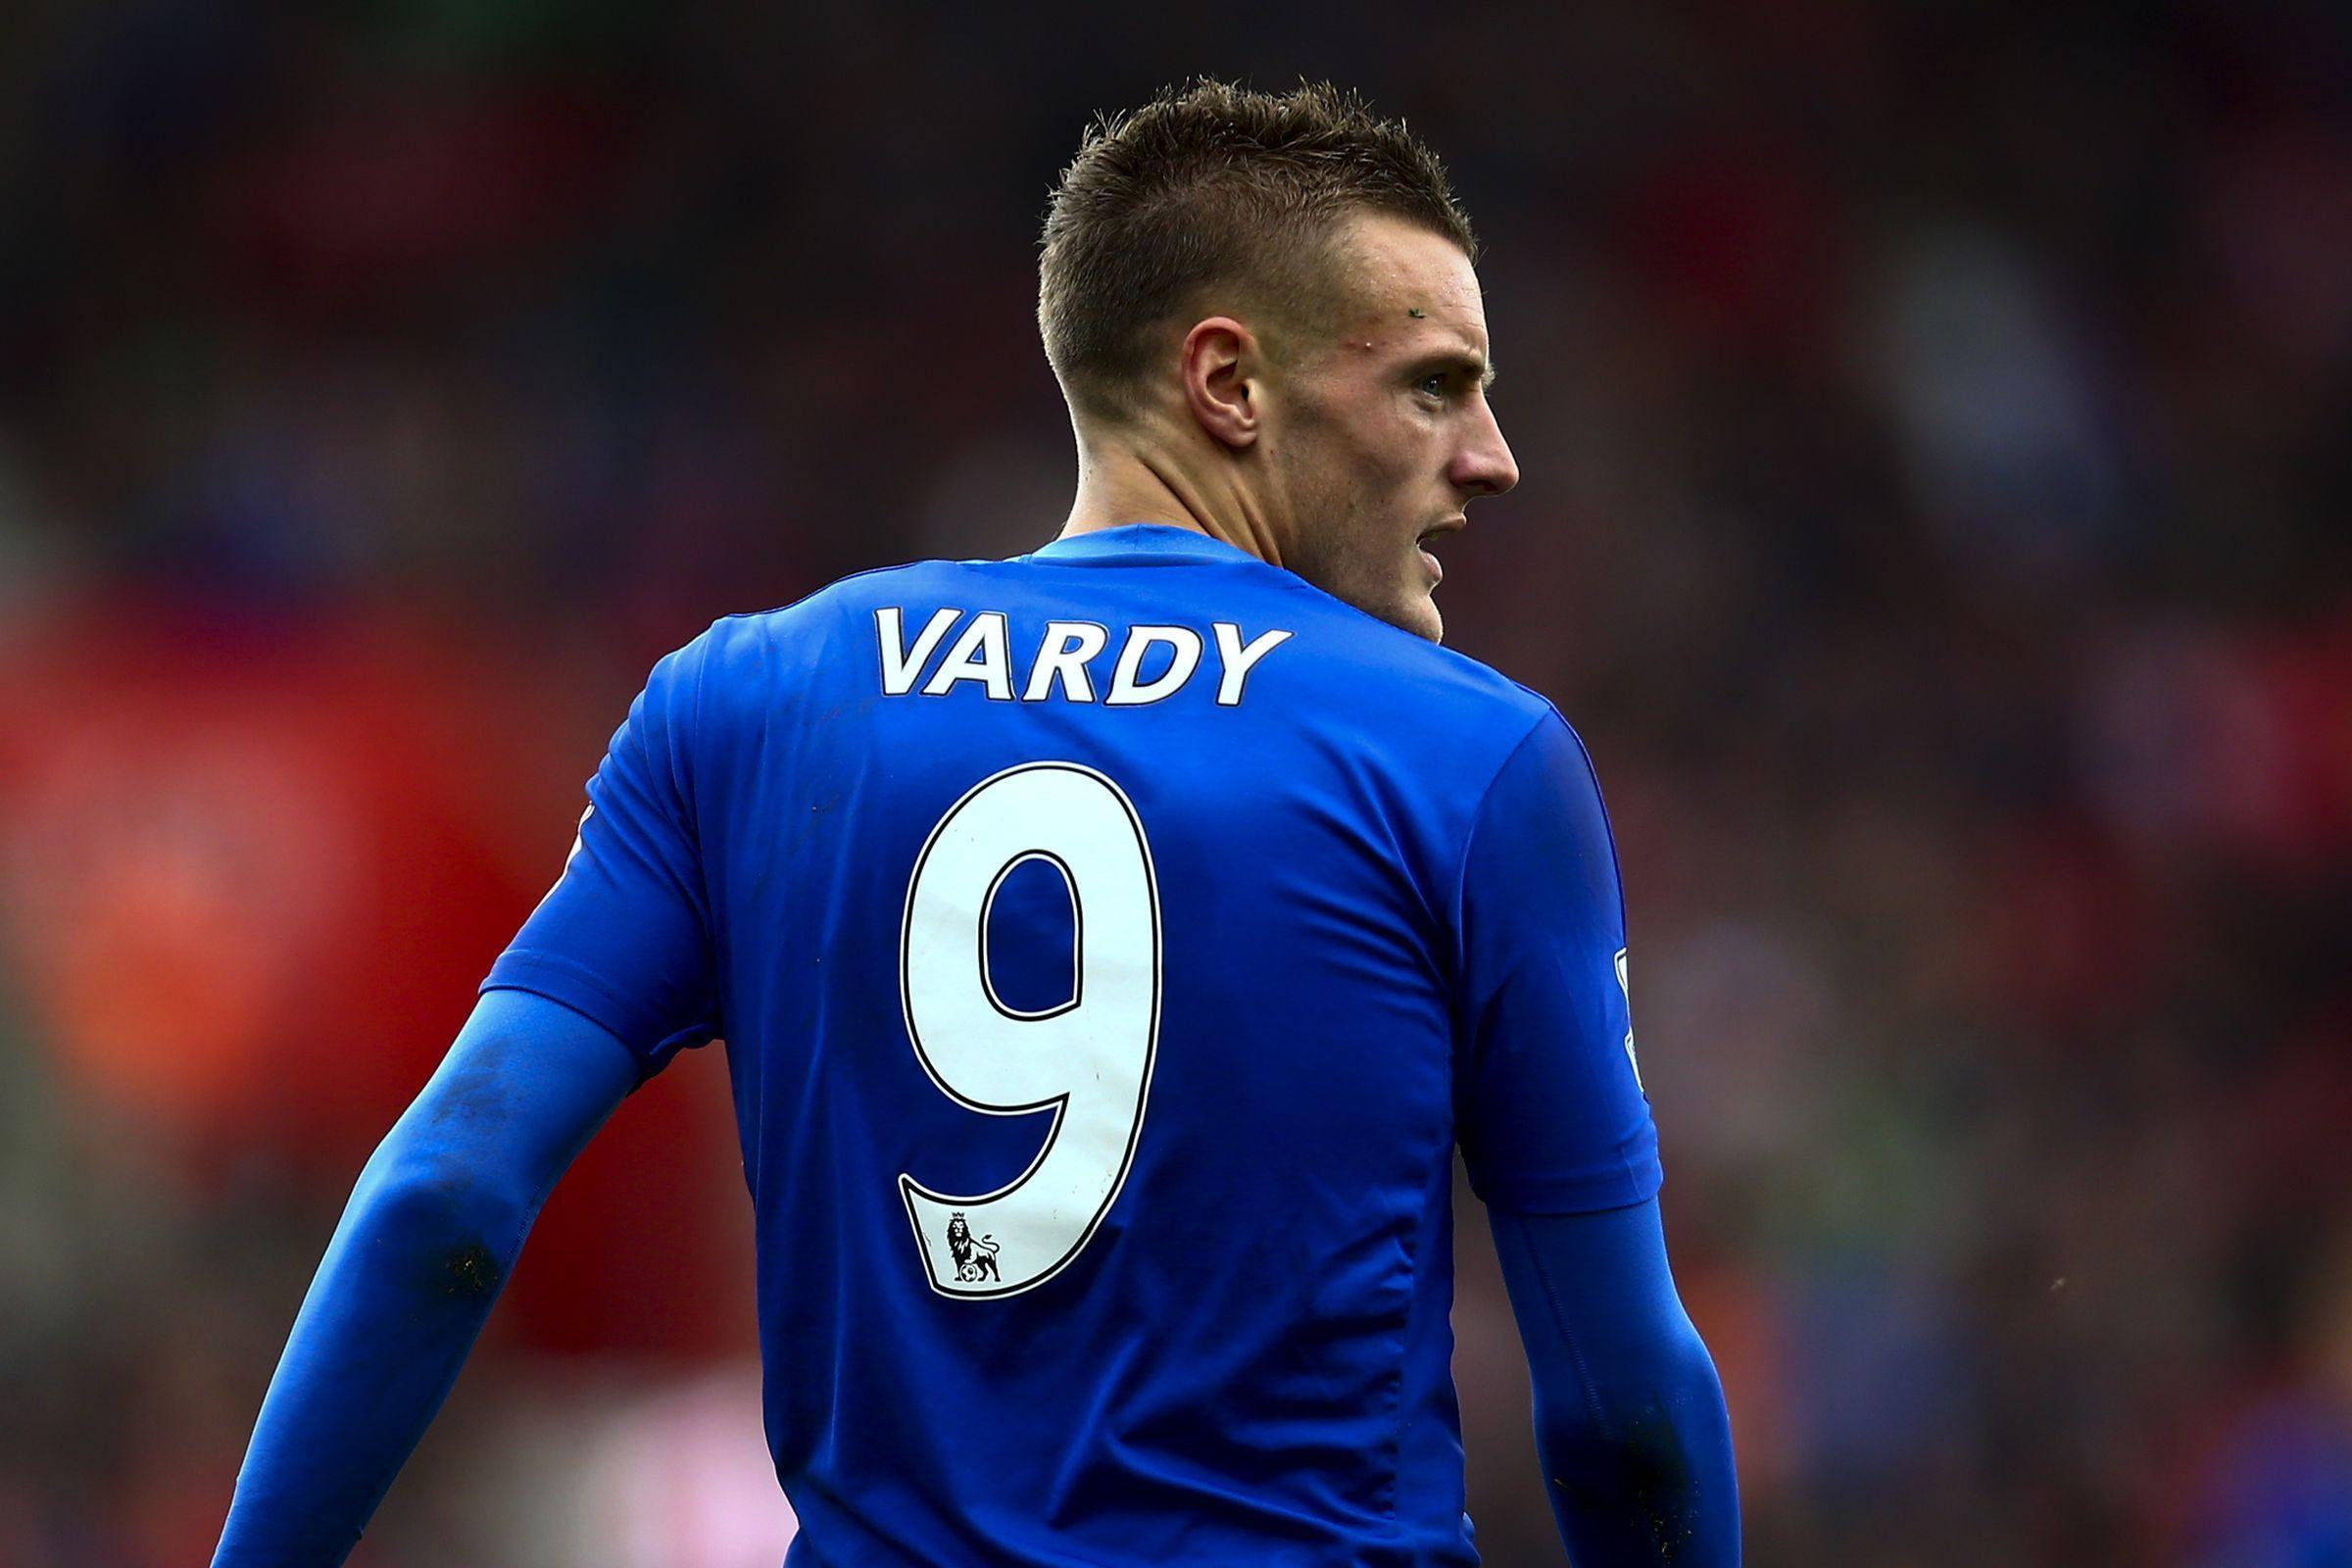 Jamie Vardy Wallpapers - Wallpaper Cave